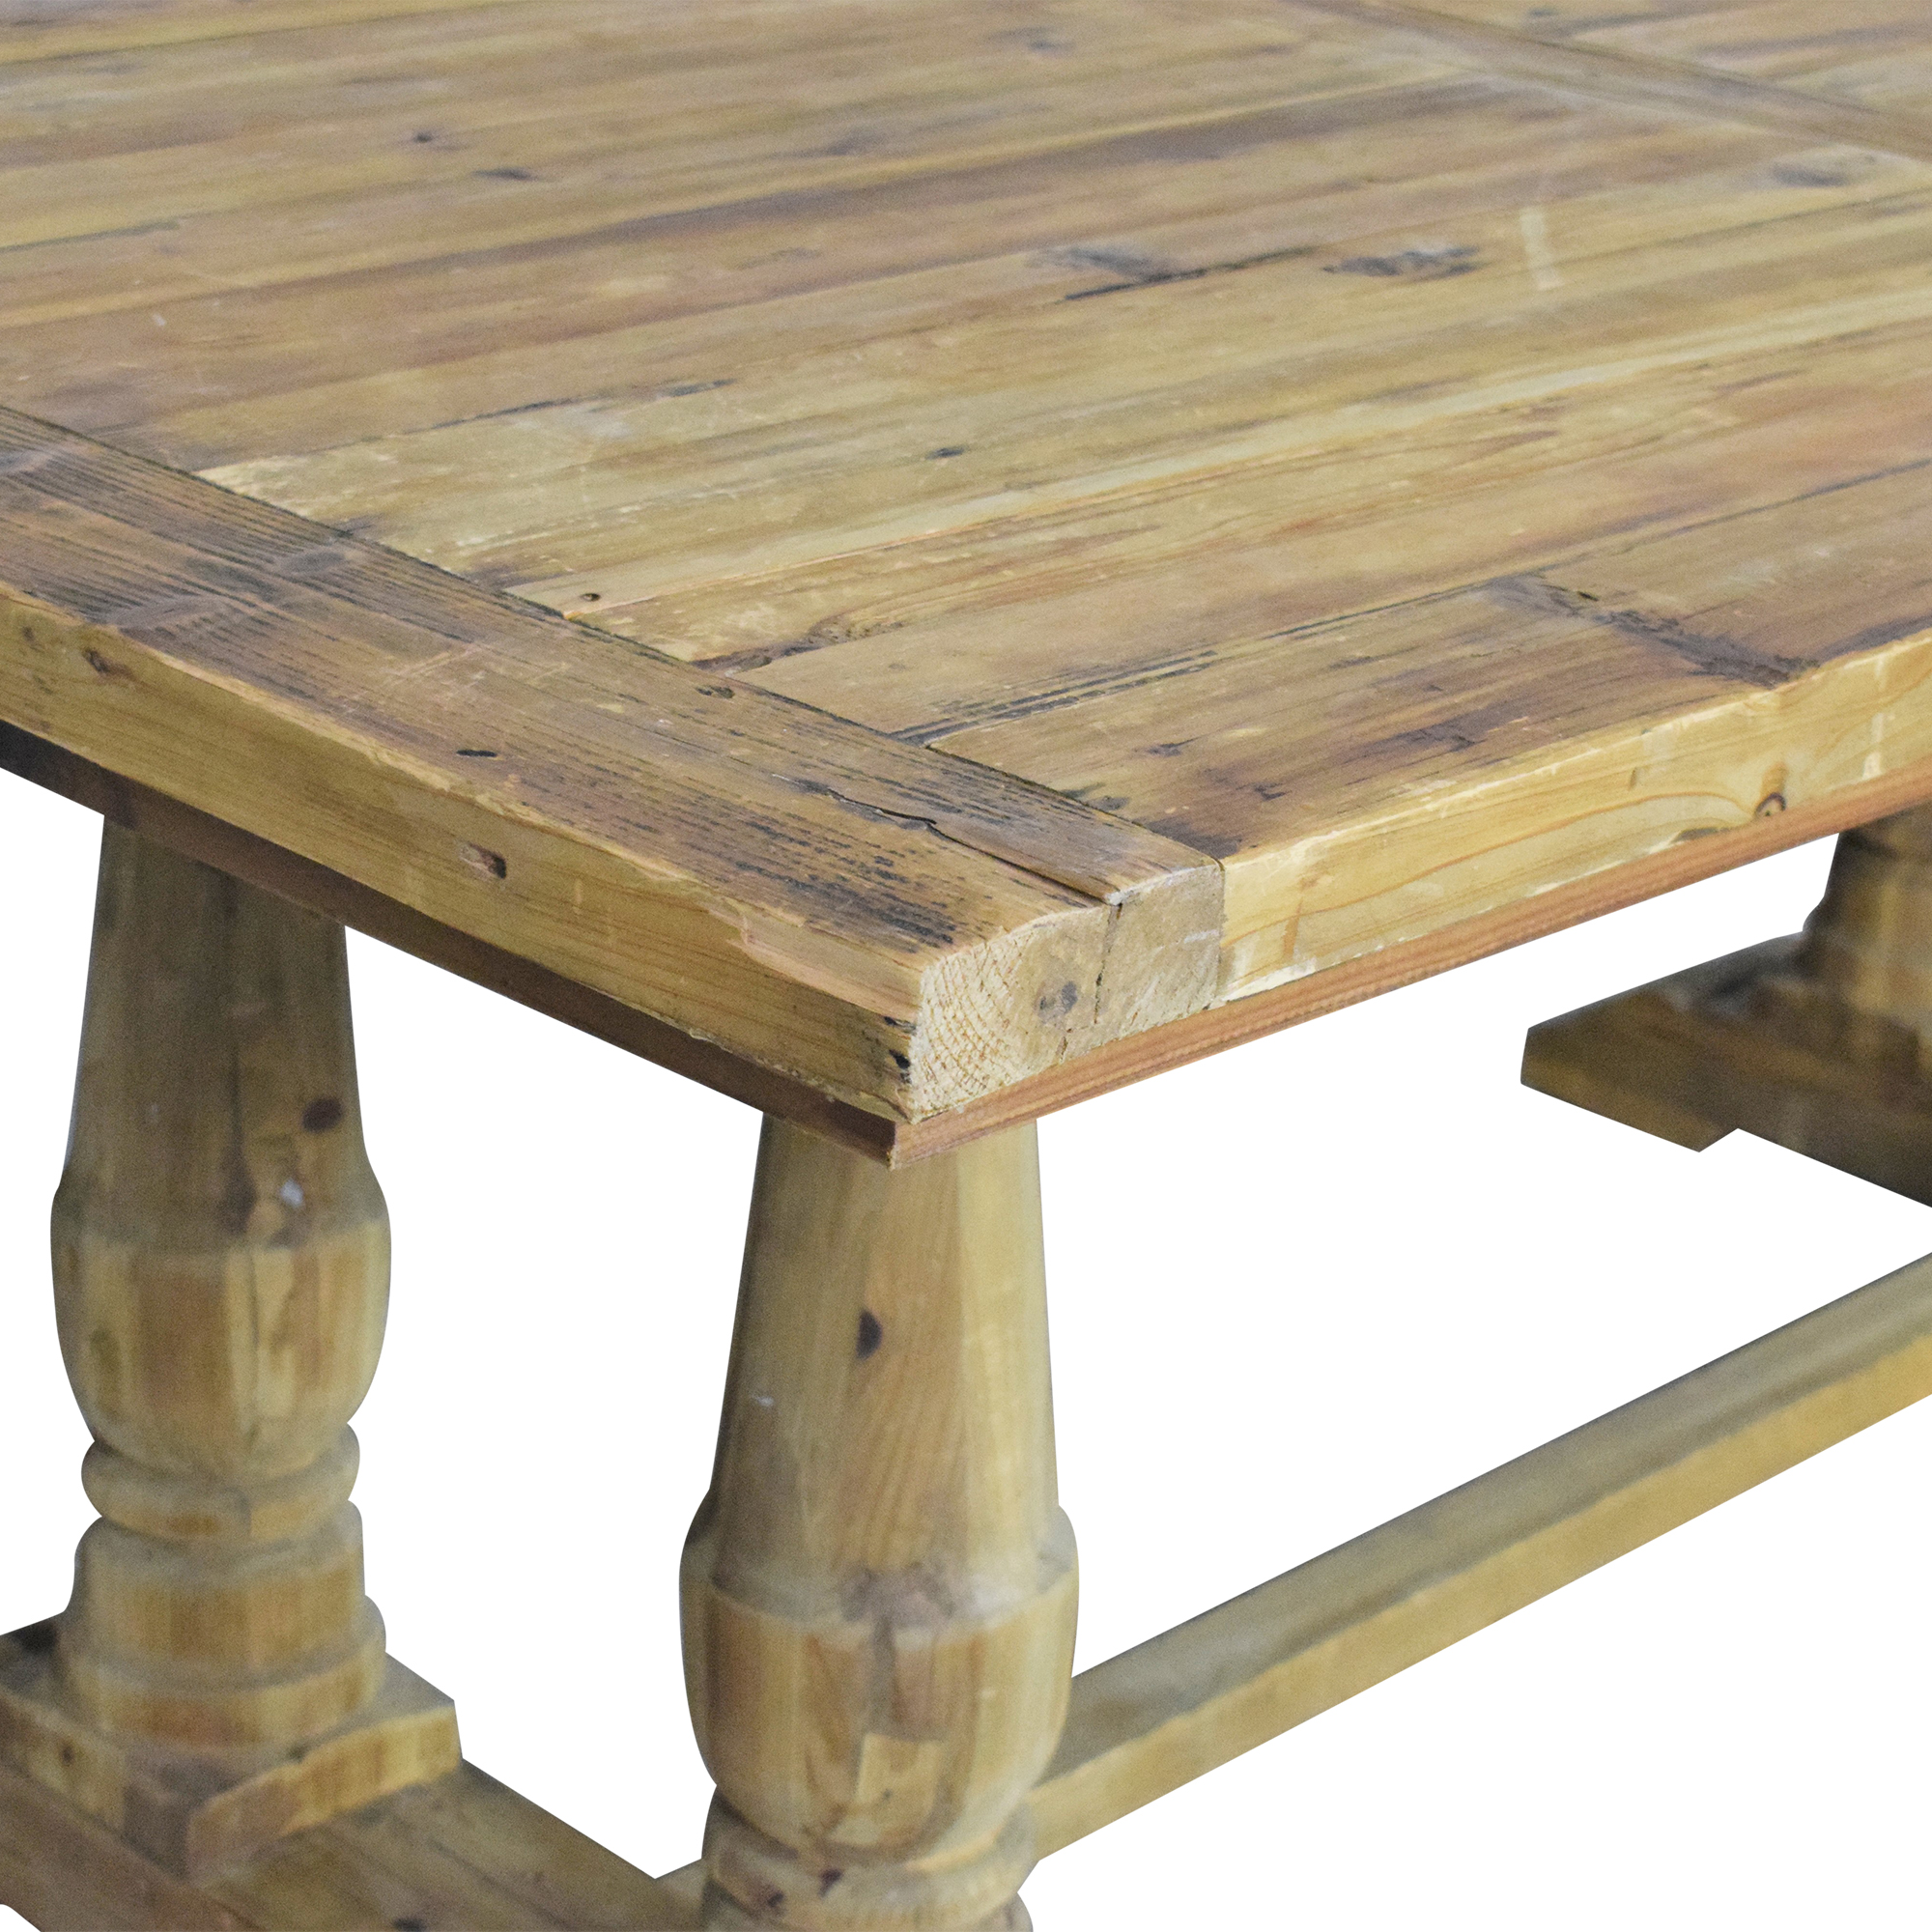 Uttermost Uttermost Stratford Dining Table dimensions